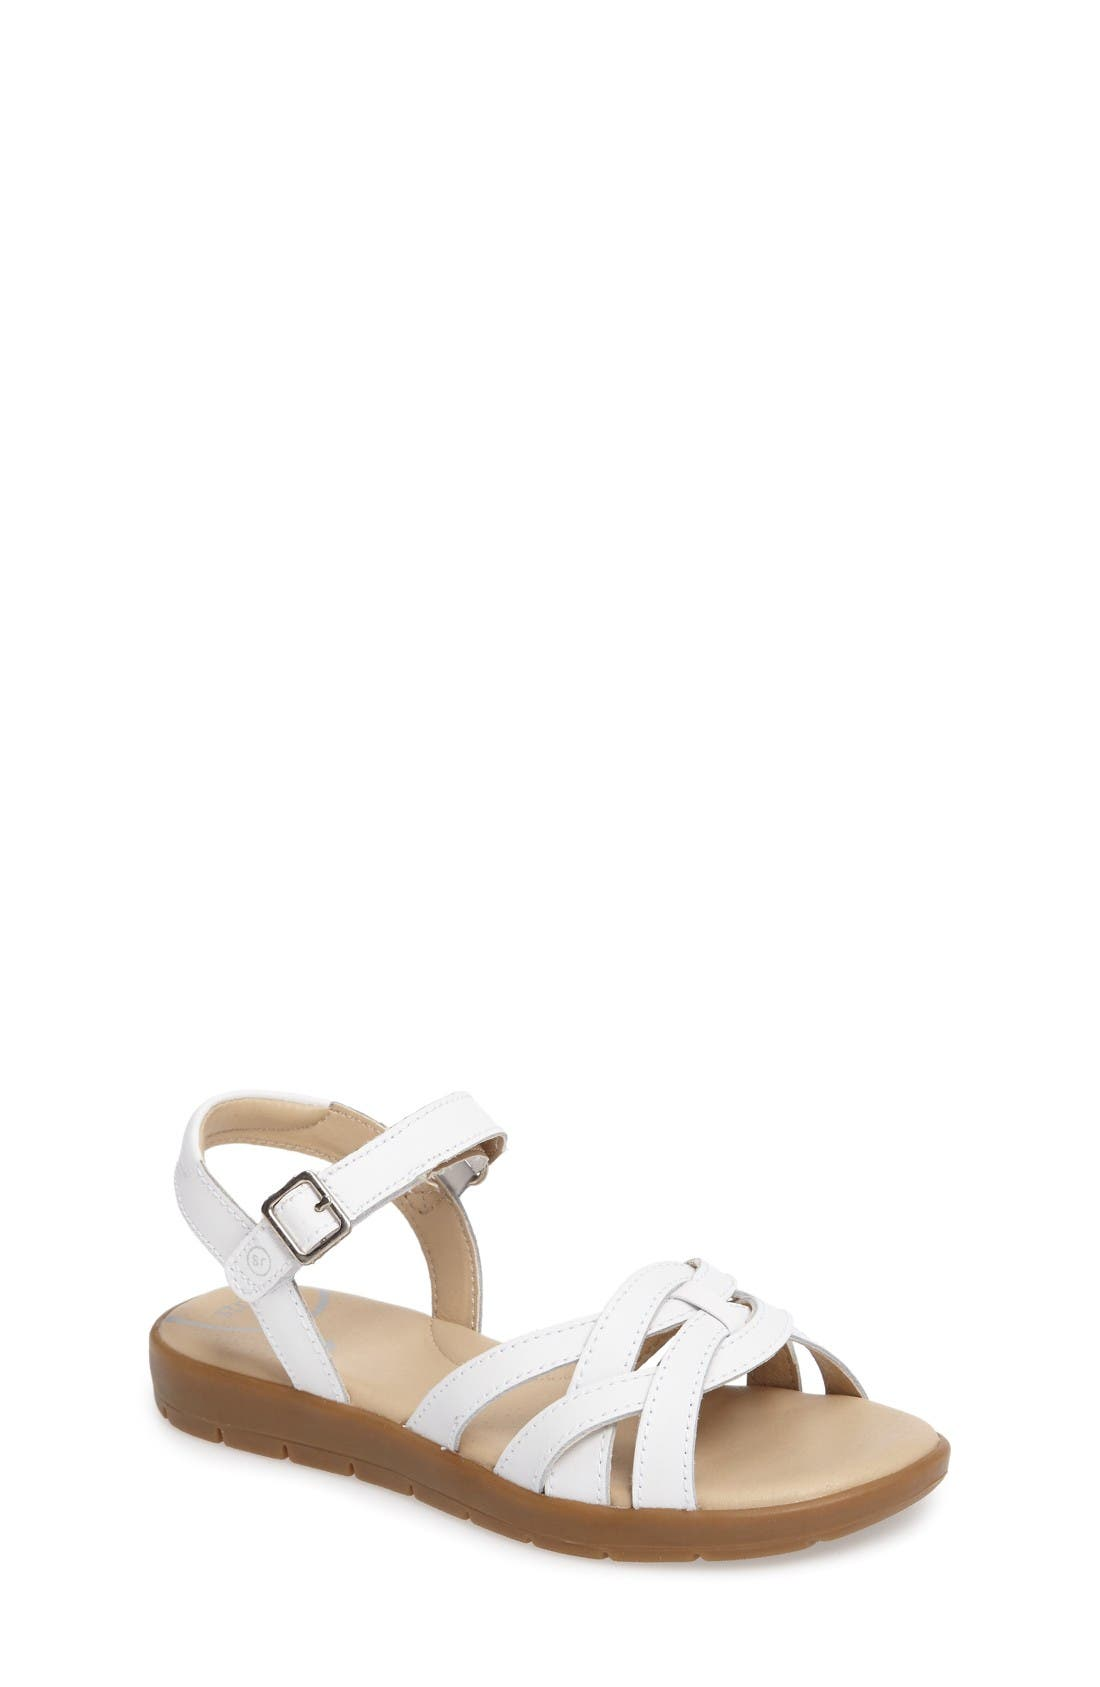 Millie Sandal,                         Main,                         color, White